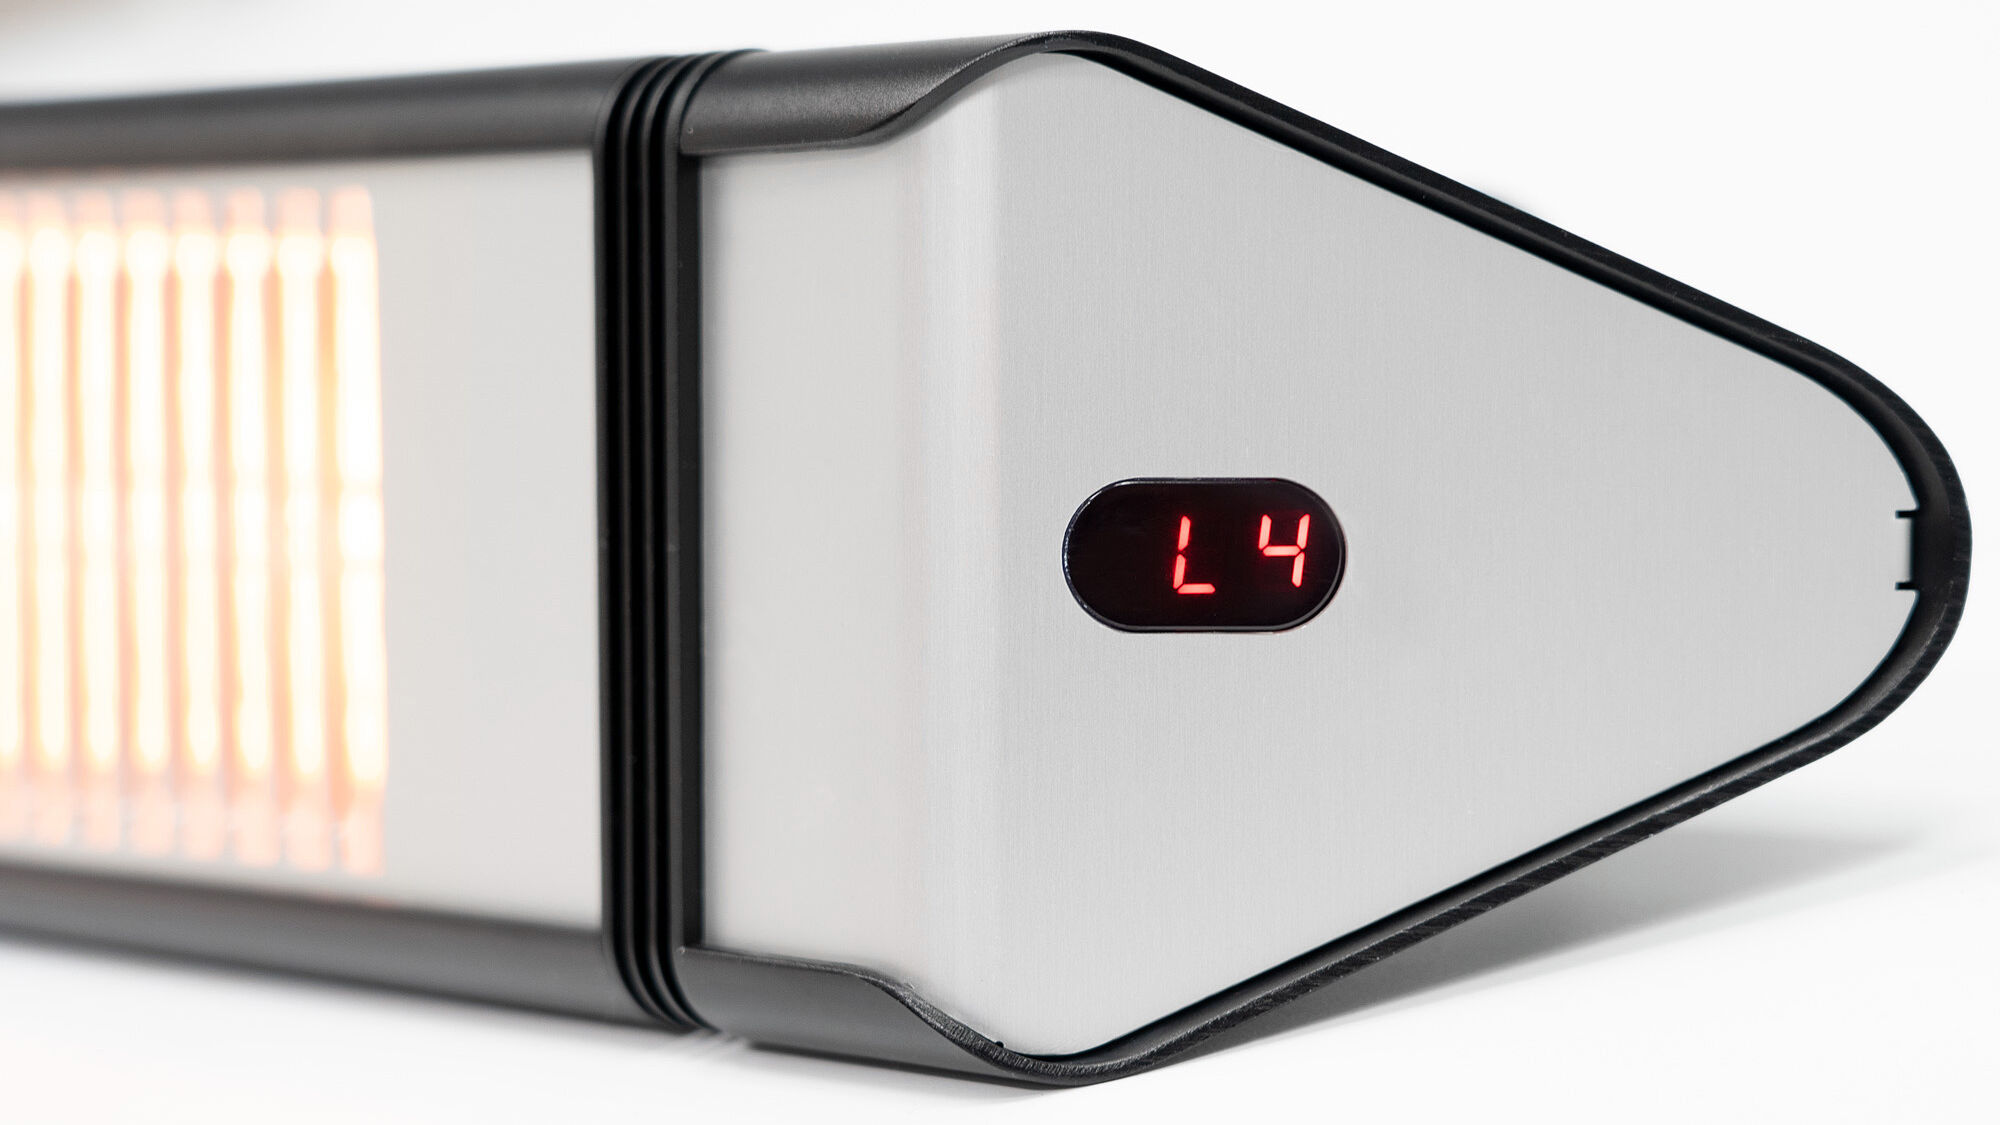 Outdoor radiant heater with 4 output settings up to 2500 watts